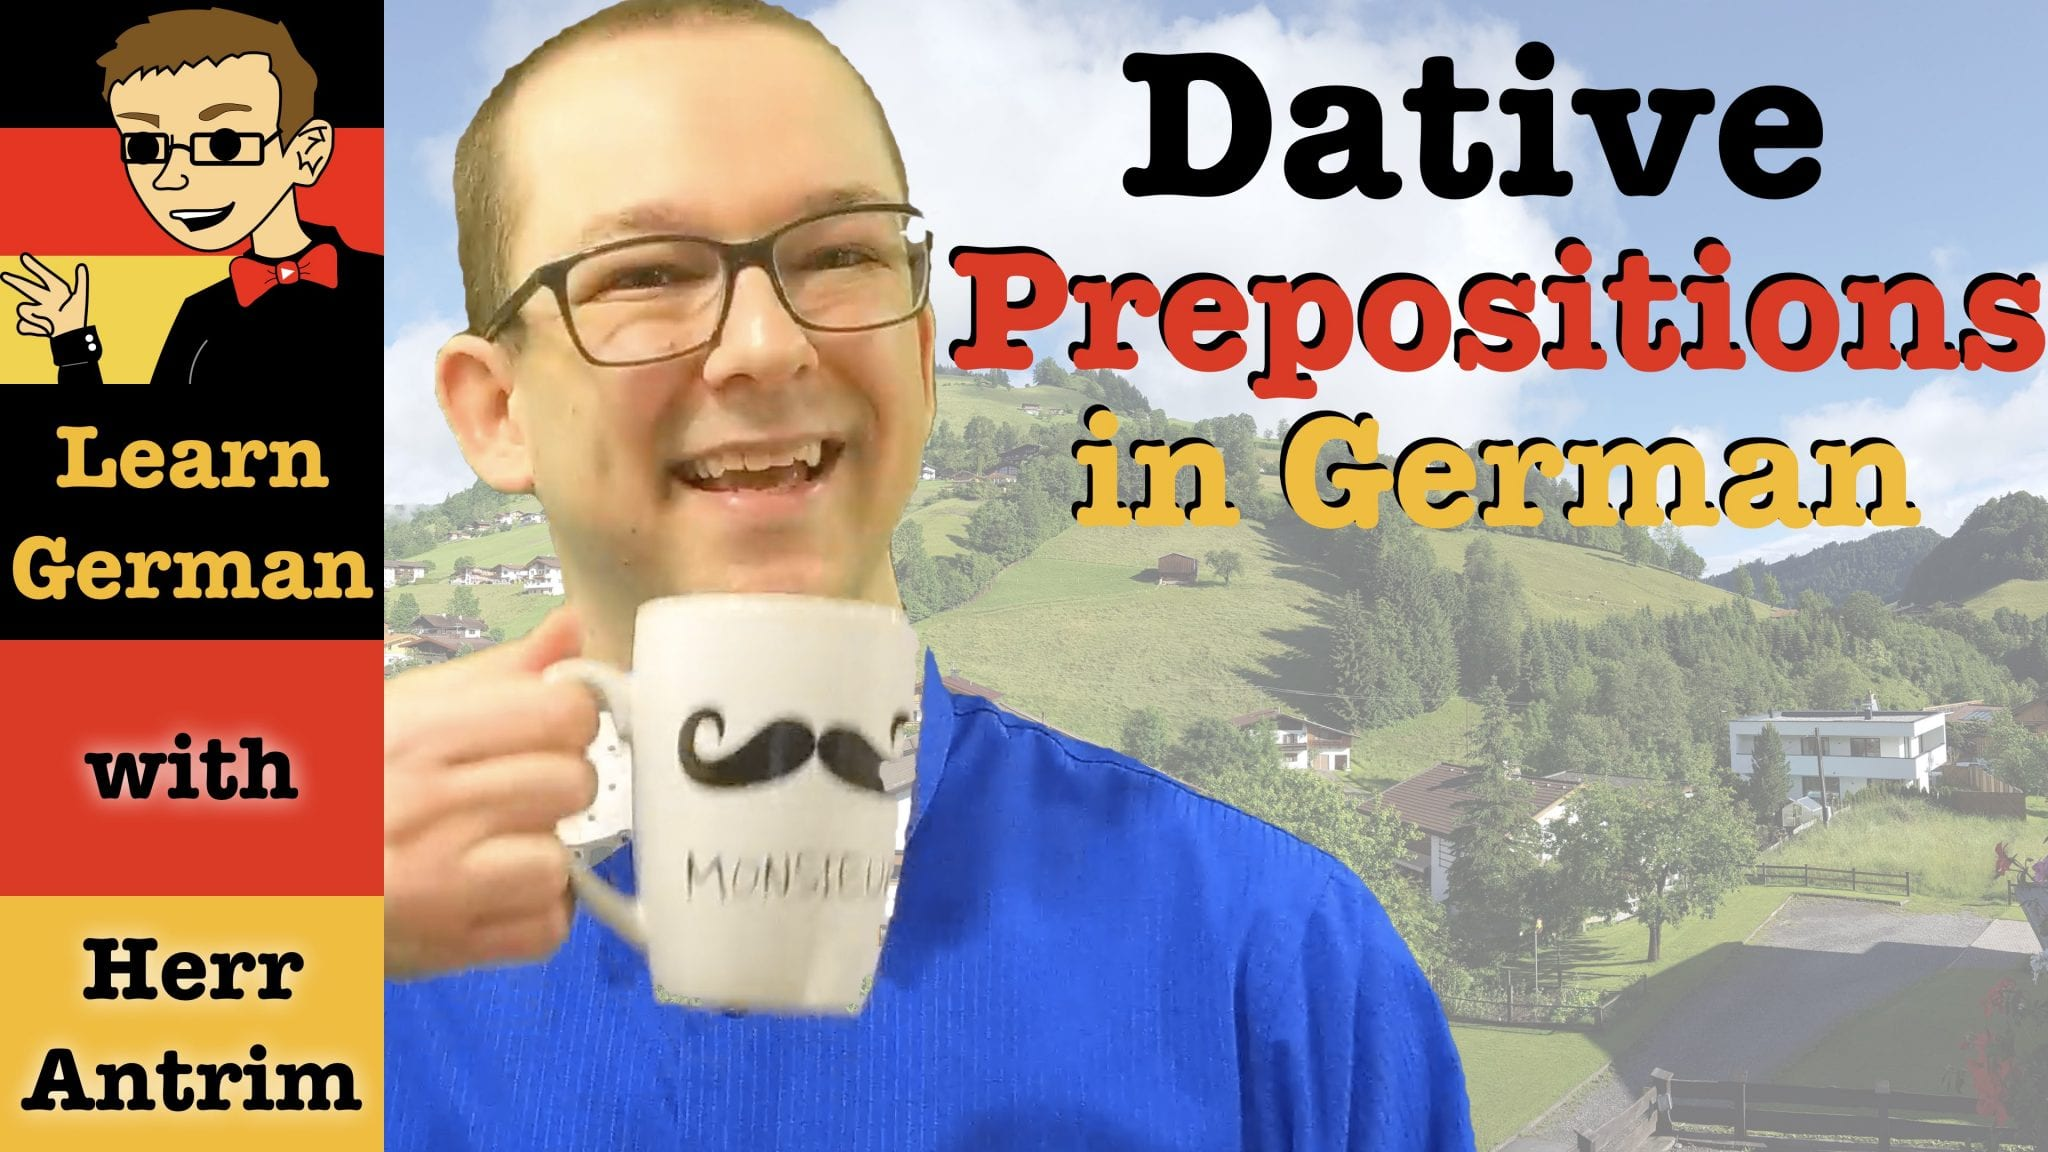 Dative Case Prepositions in German